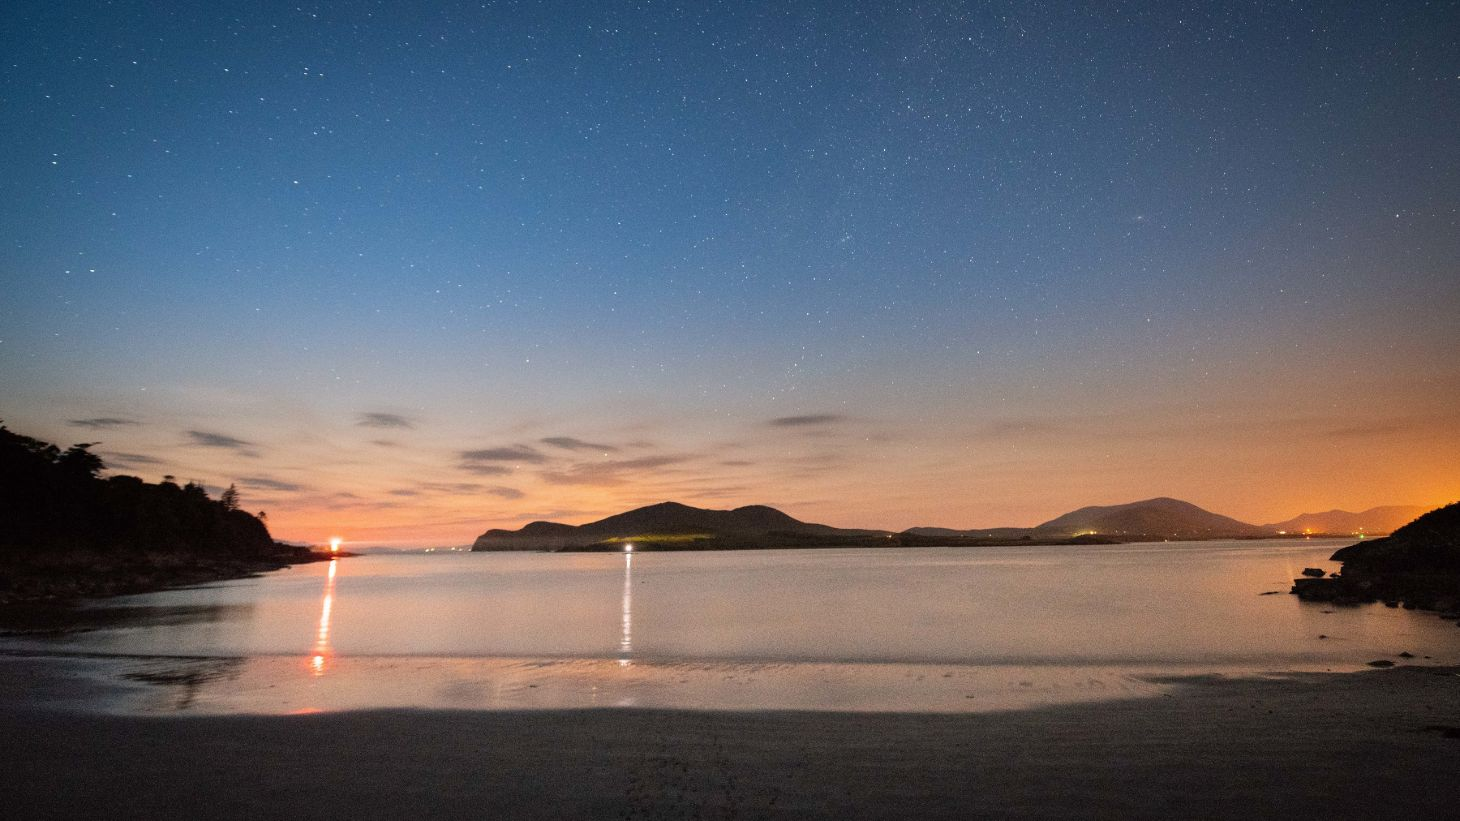 Visit Kerry and gaze up in awe at the International Dark Sky Reserve